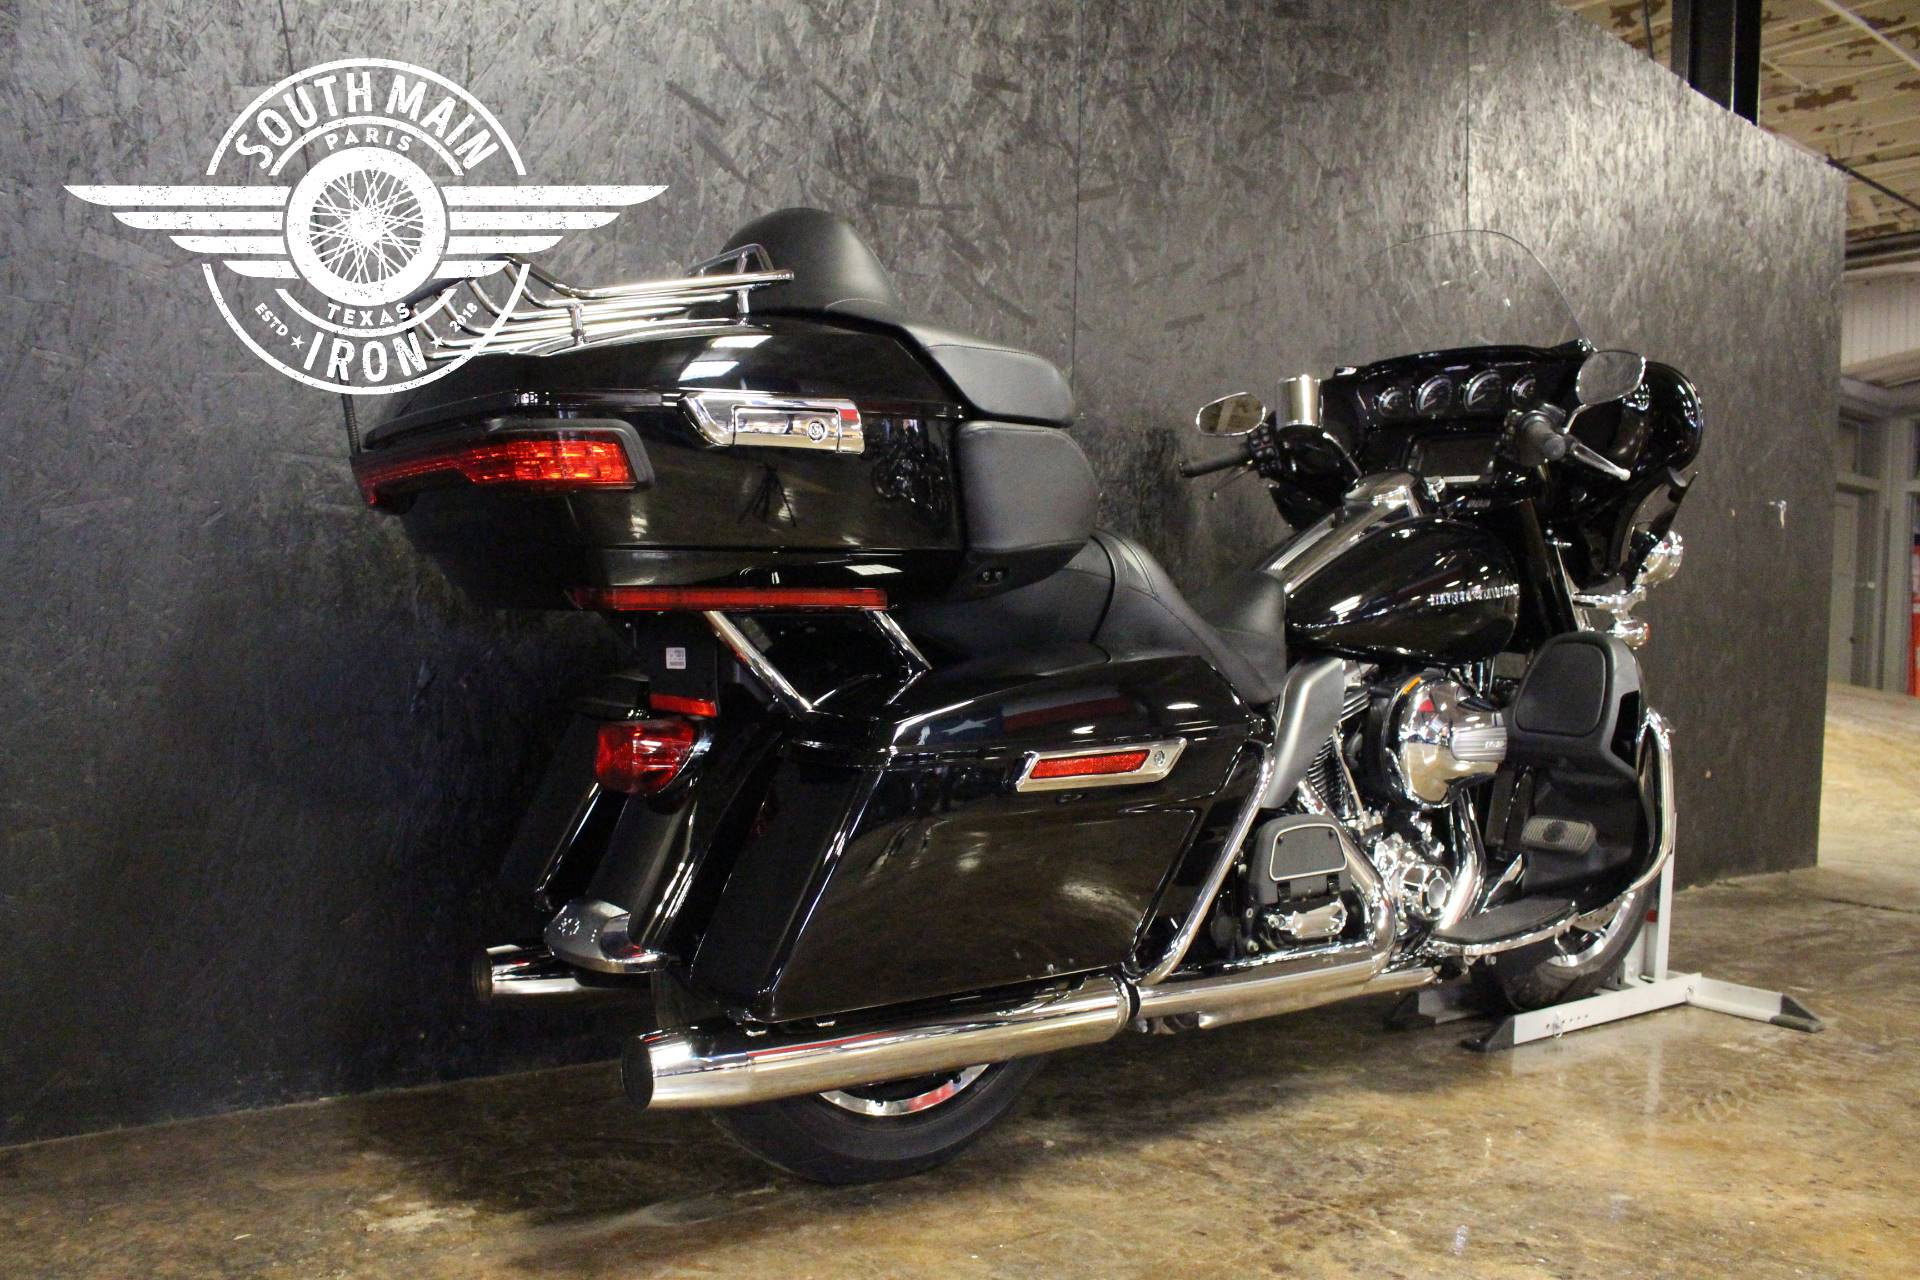 2015 Harley-Davidson ELECTRA GLIDE ULTRA LIMITED in Paris, Texas